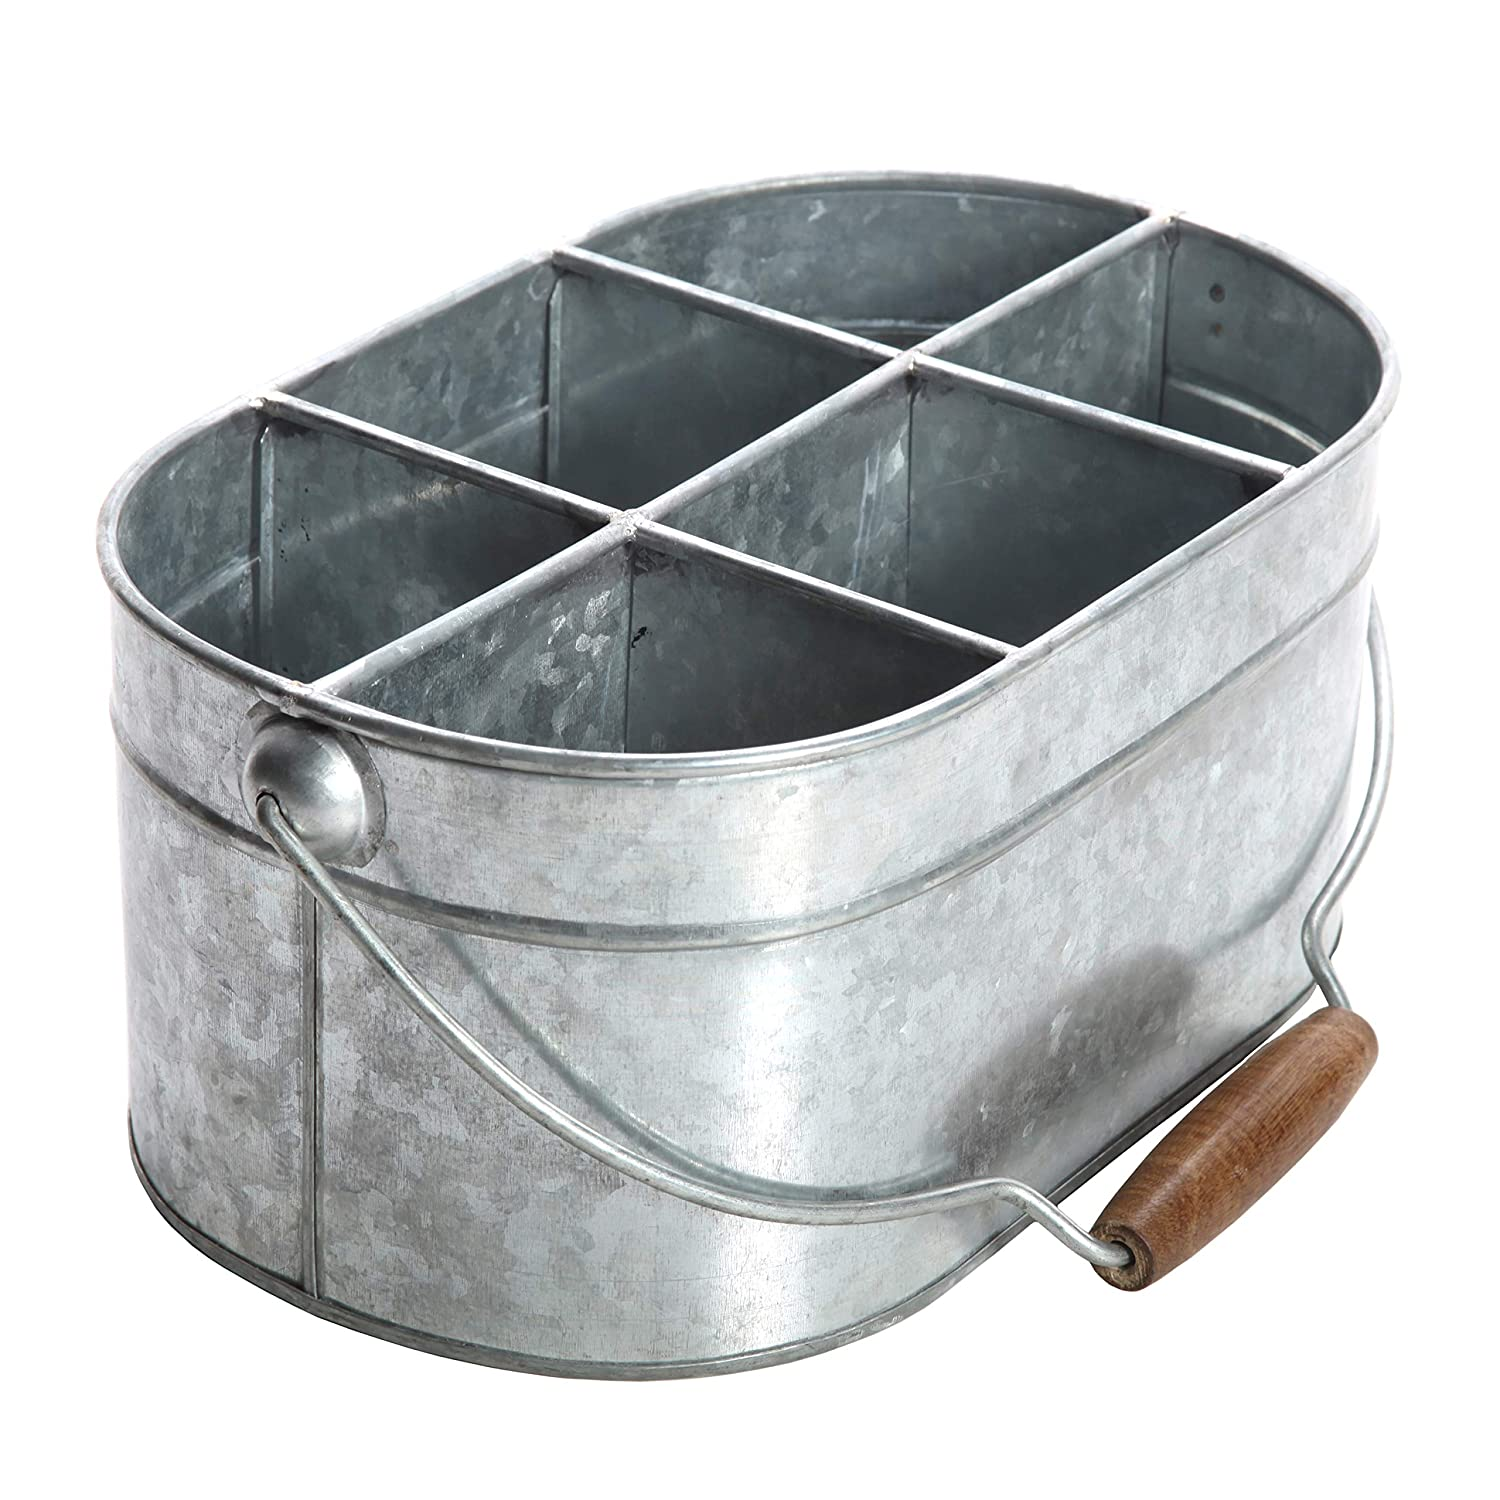 "Hosley's Galvanized Carry All, Kitchen / Utensil Caddy, Serve Ware 13"" Long. Ideal for Party, Garden, Patio. O3"